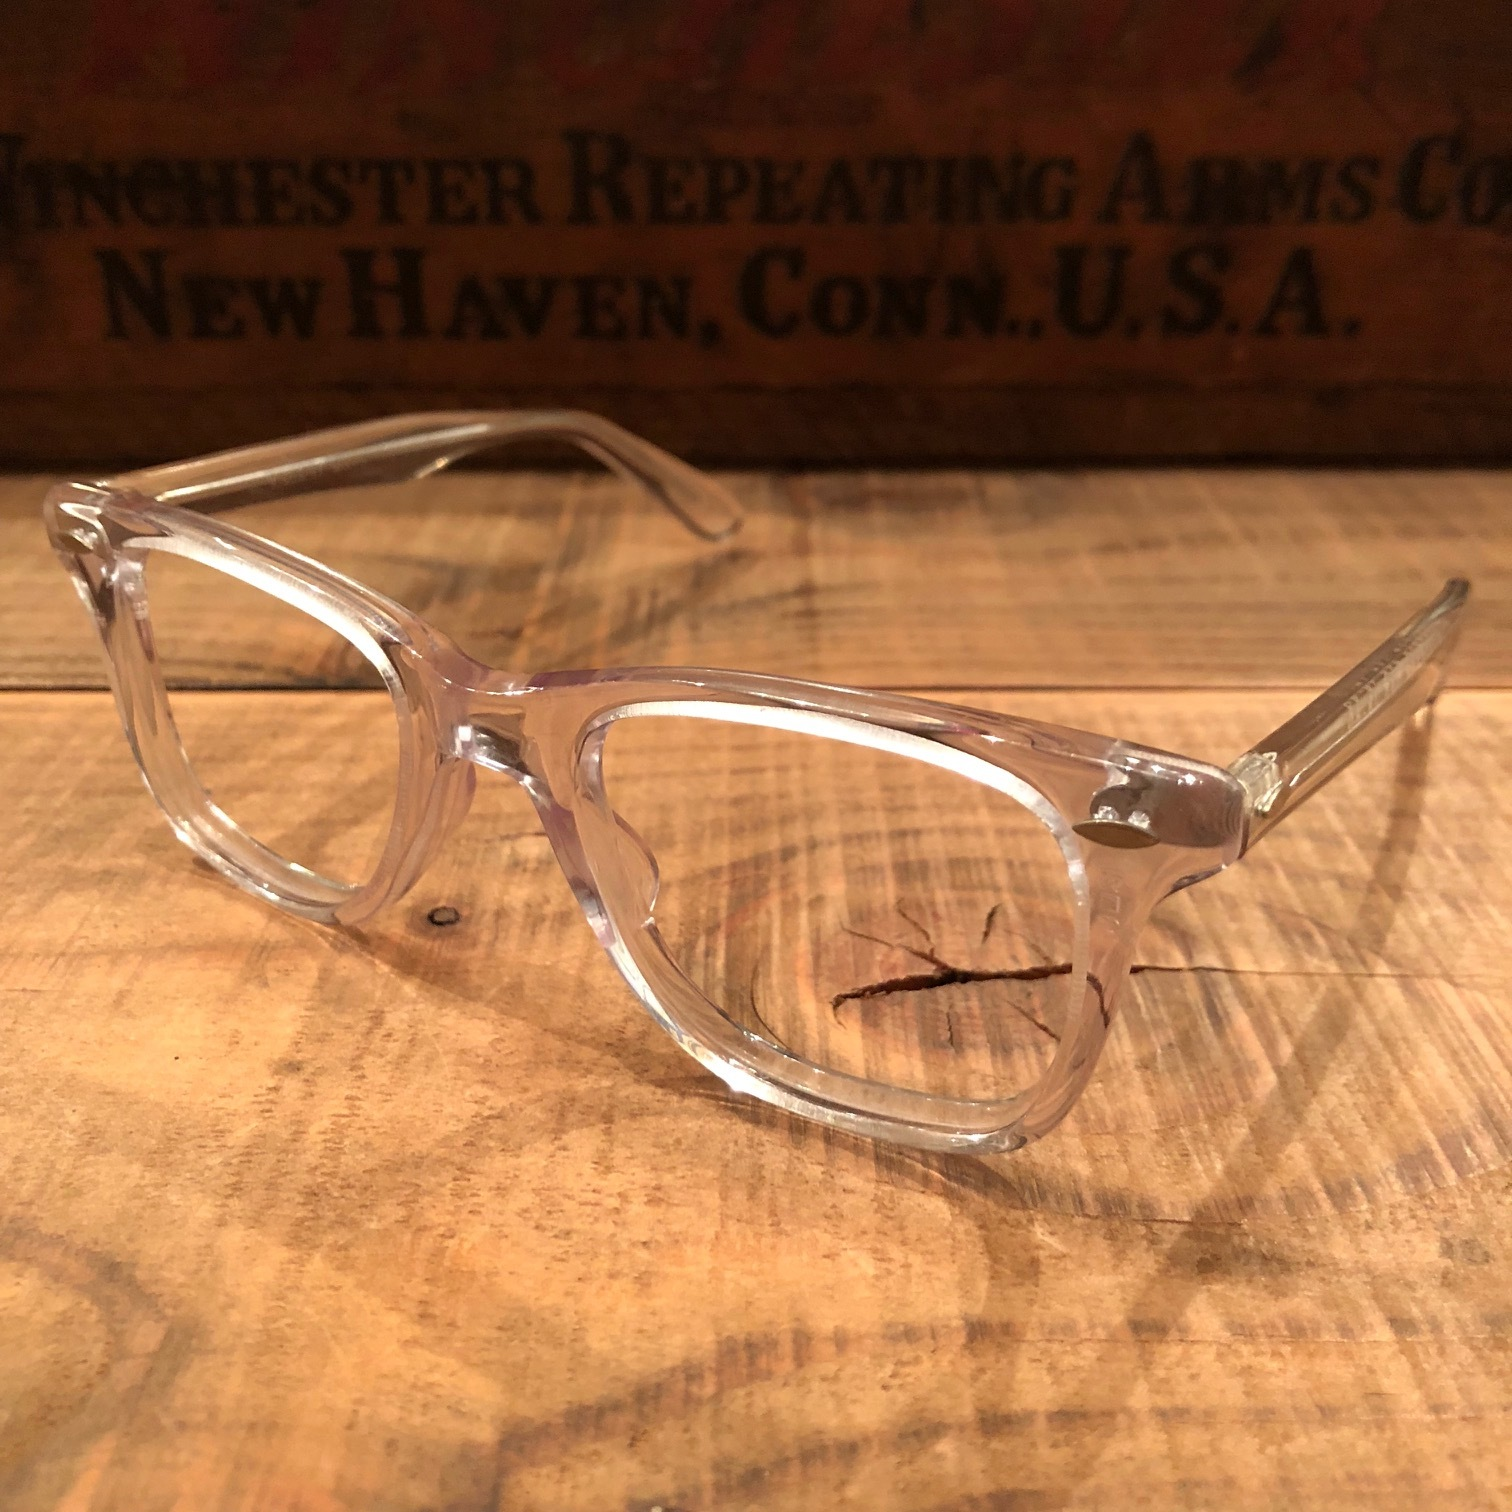 "1950-60s "" VICTORY optical \"" - VINTAGE - wellington CLEAR CELL FRAME - mintconditions - ._d0172088_22162965.jpg"